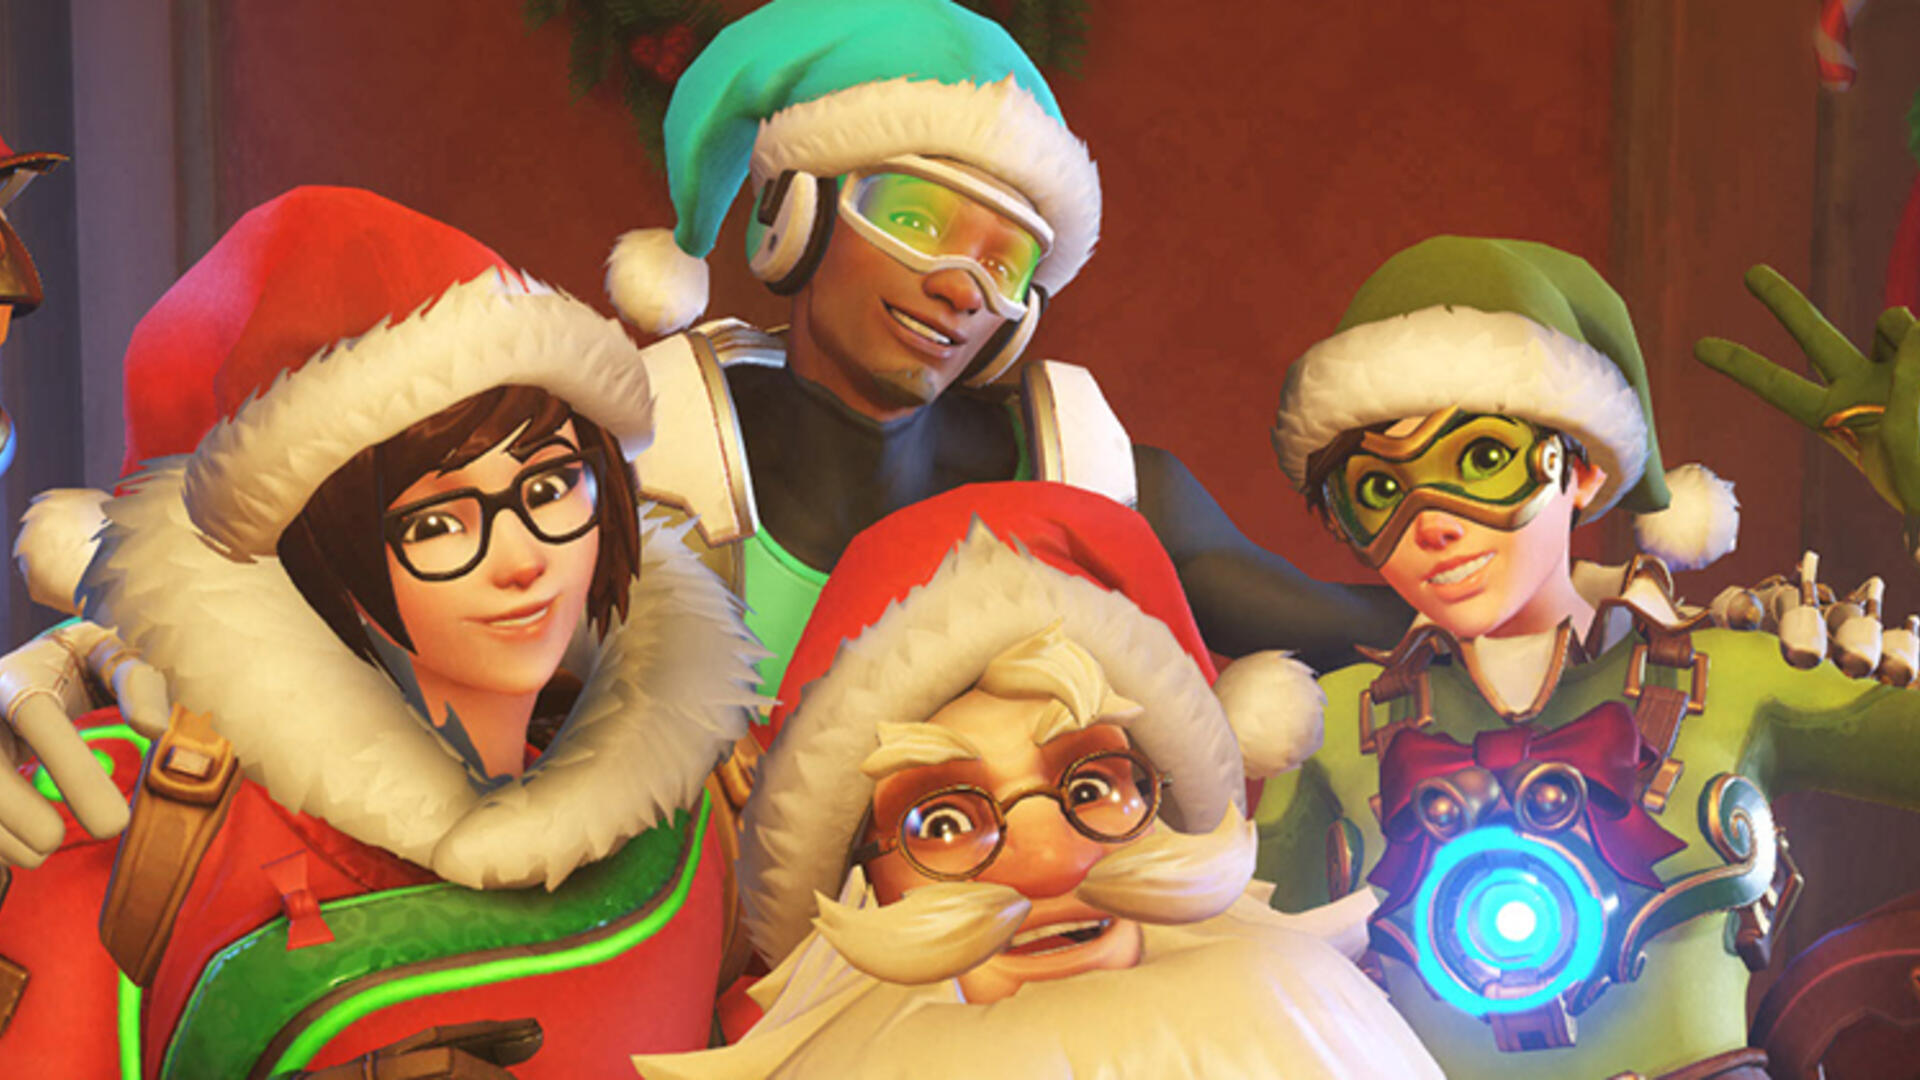 Overwatch's Winter Wonderland Returns Soon With a Scary Mei Versus Winston Mode